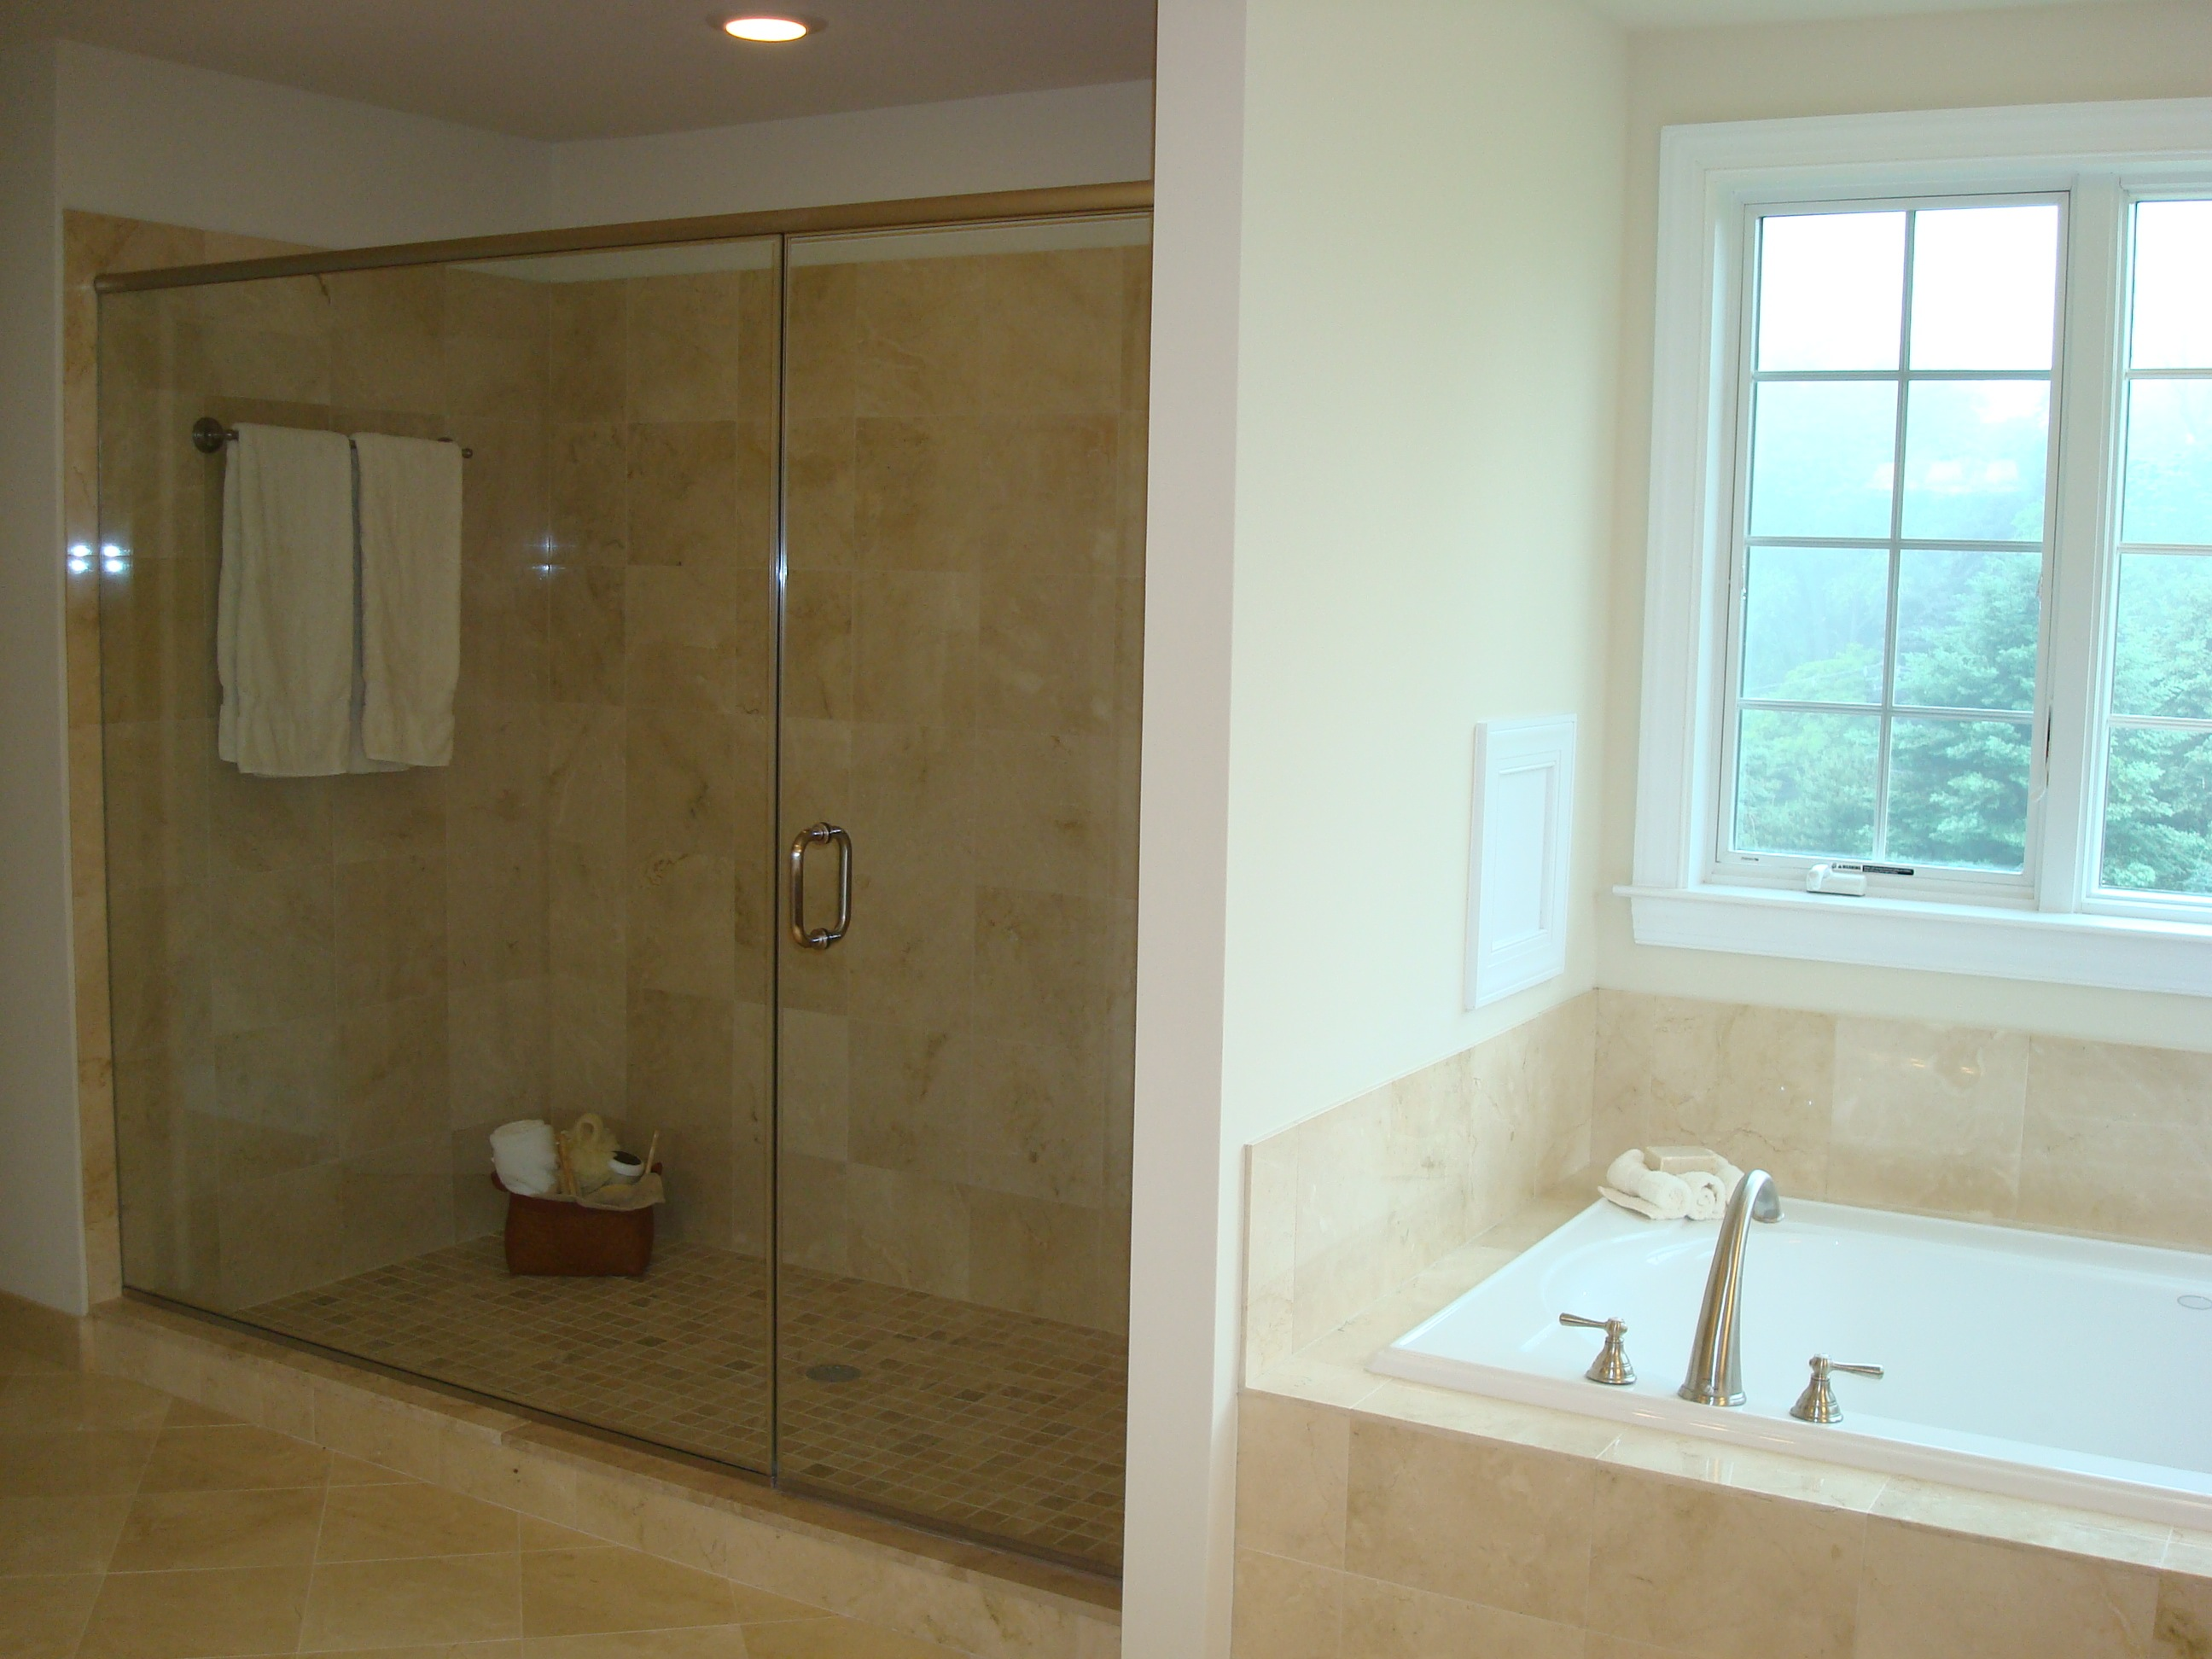 kitchens bathrooms kitchen and bathroom remodeling Bathroom Remodeling